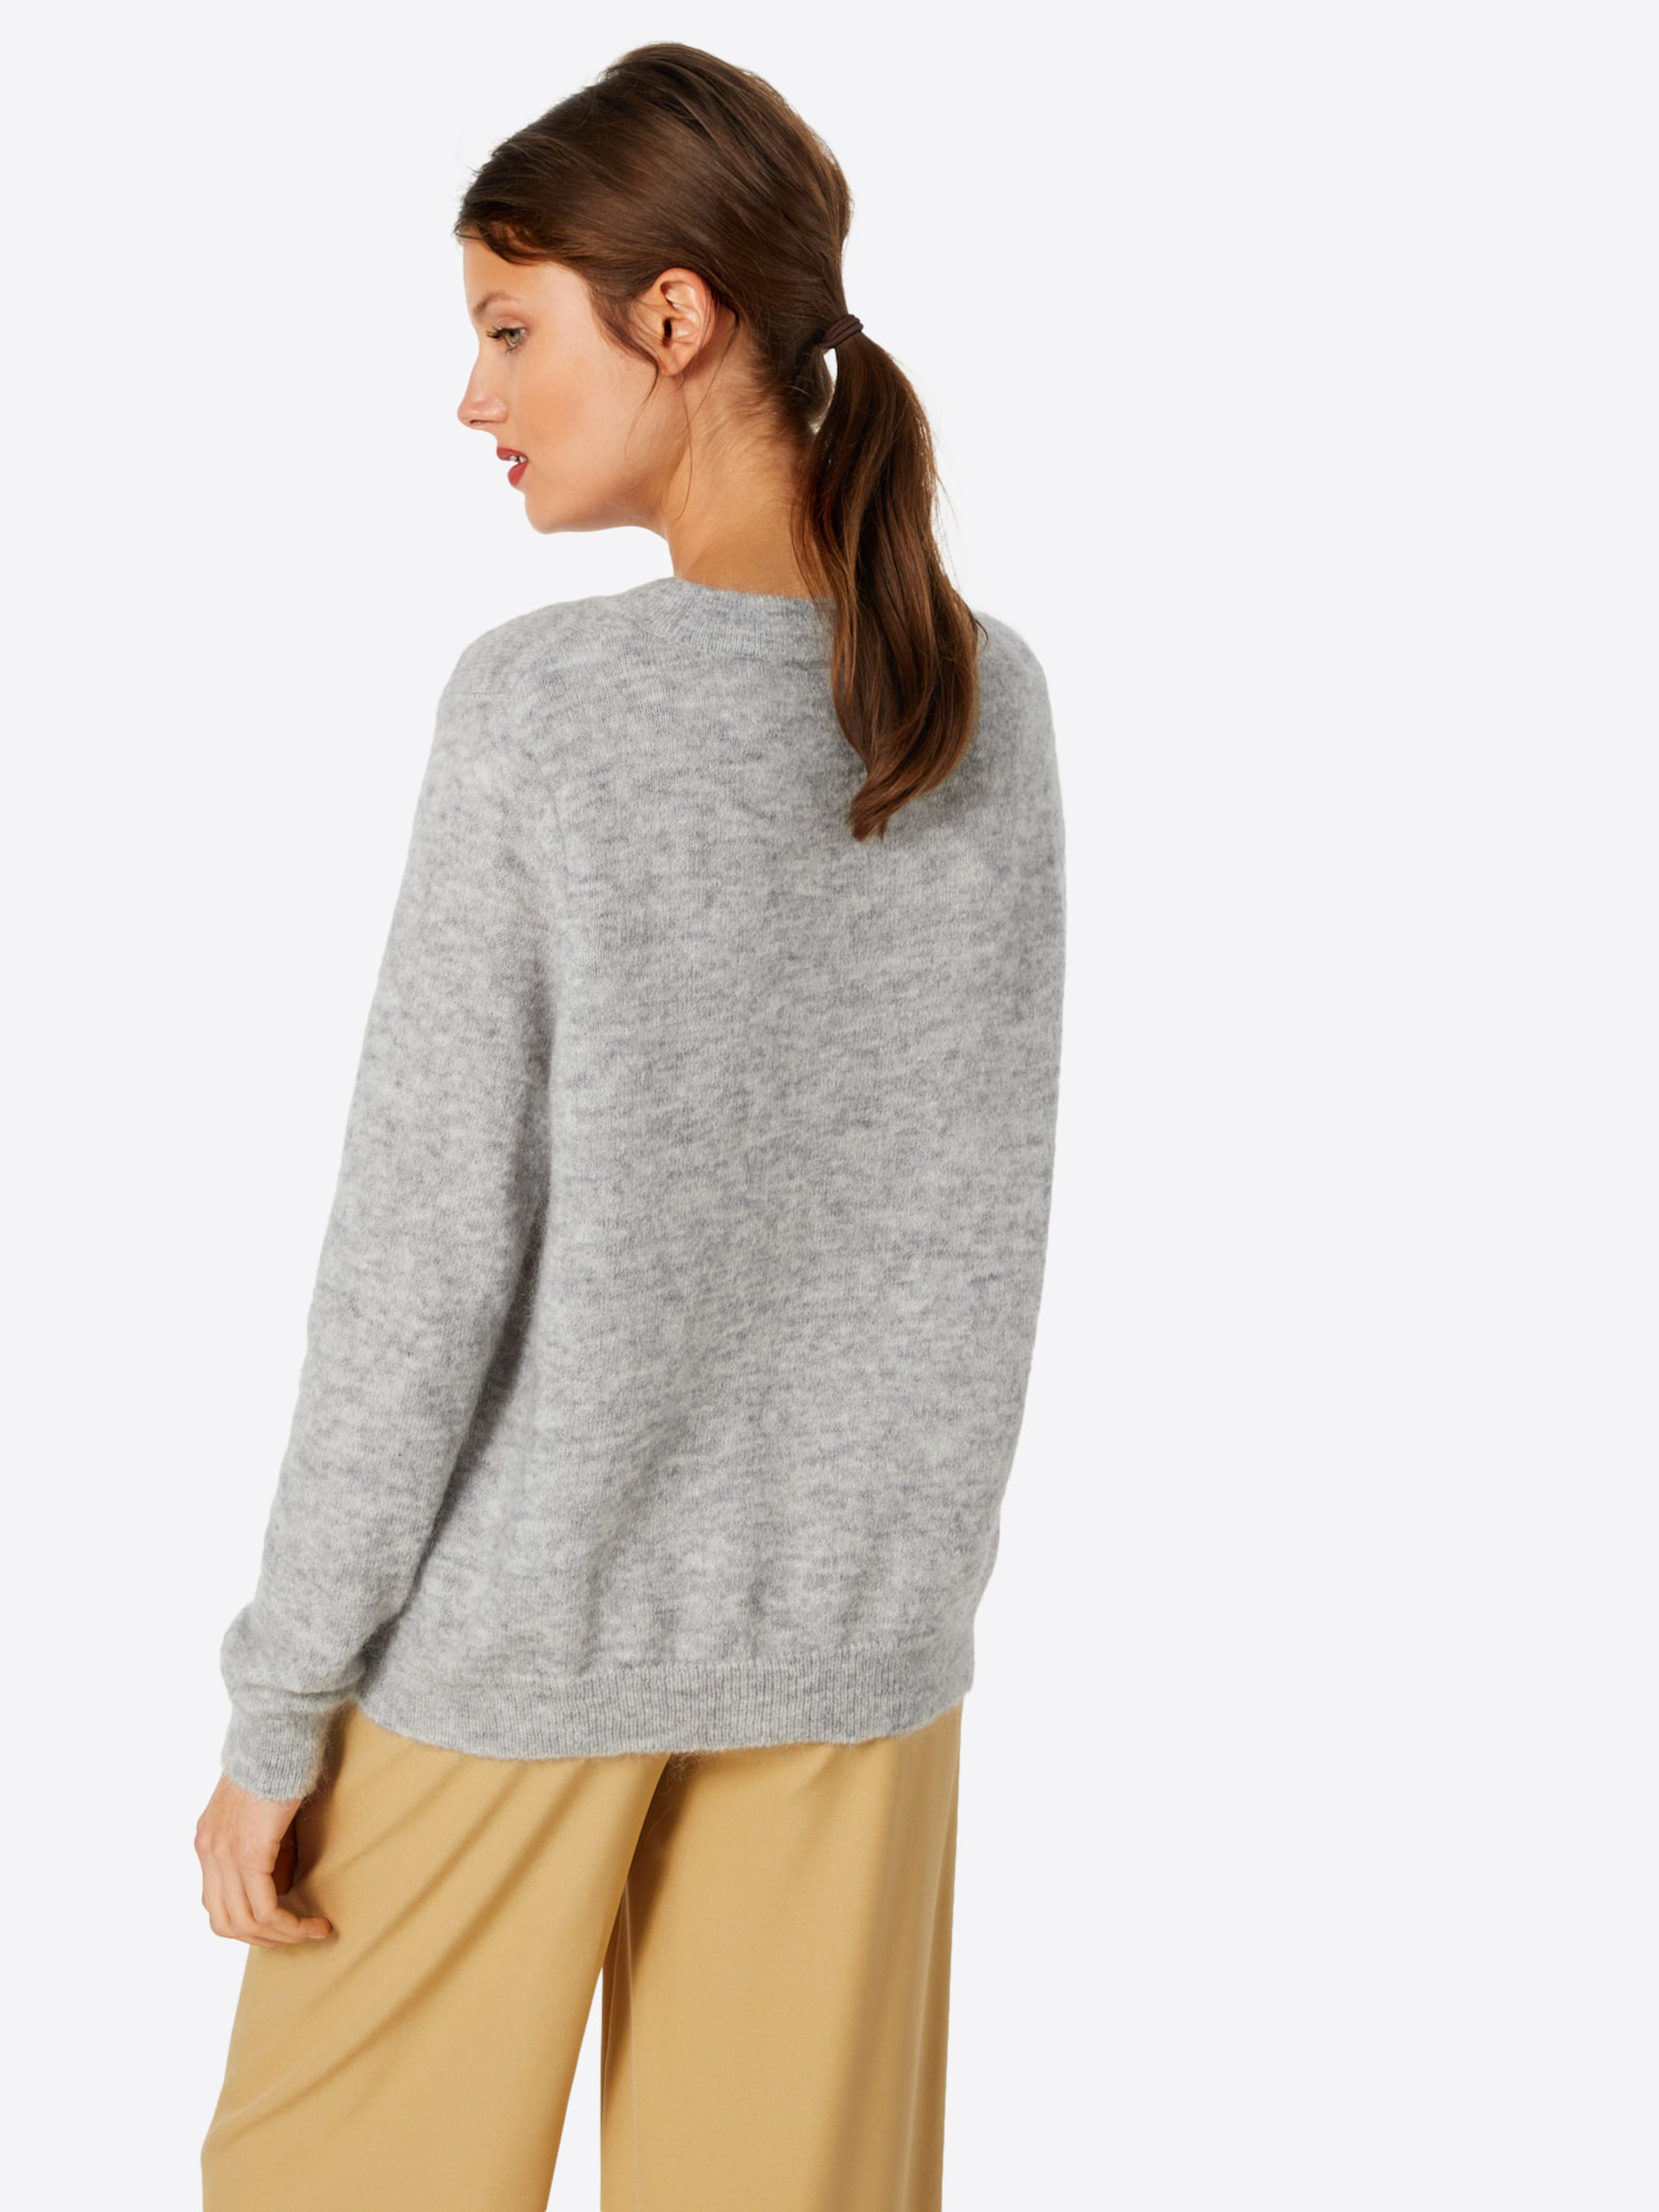 In In Graumeliert Graumeliert Pullover Pullover Object Object Object f7gb6vIyY